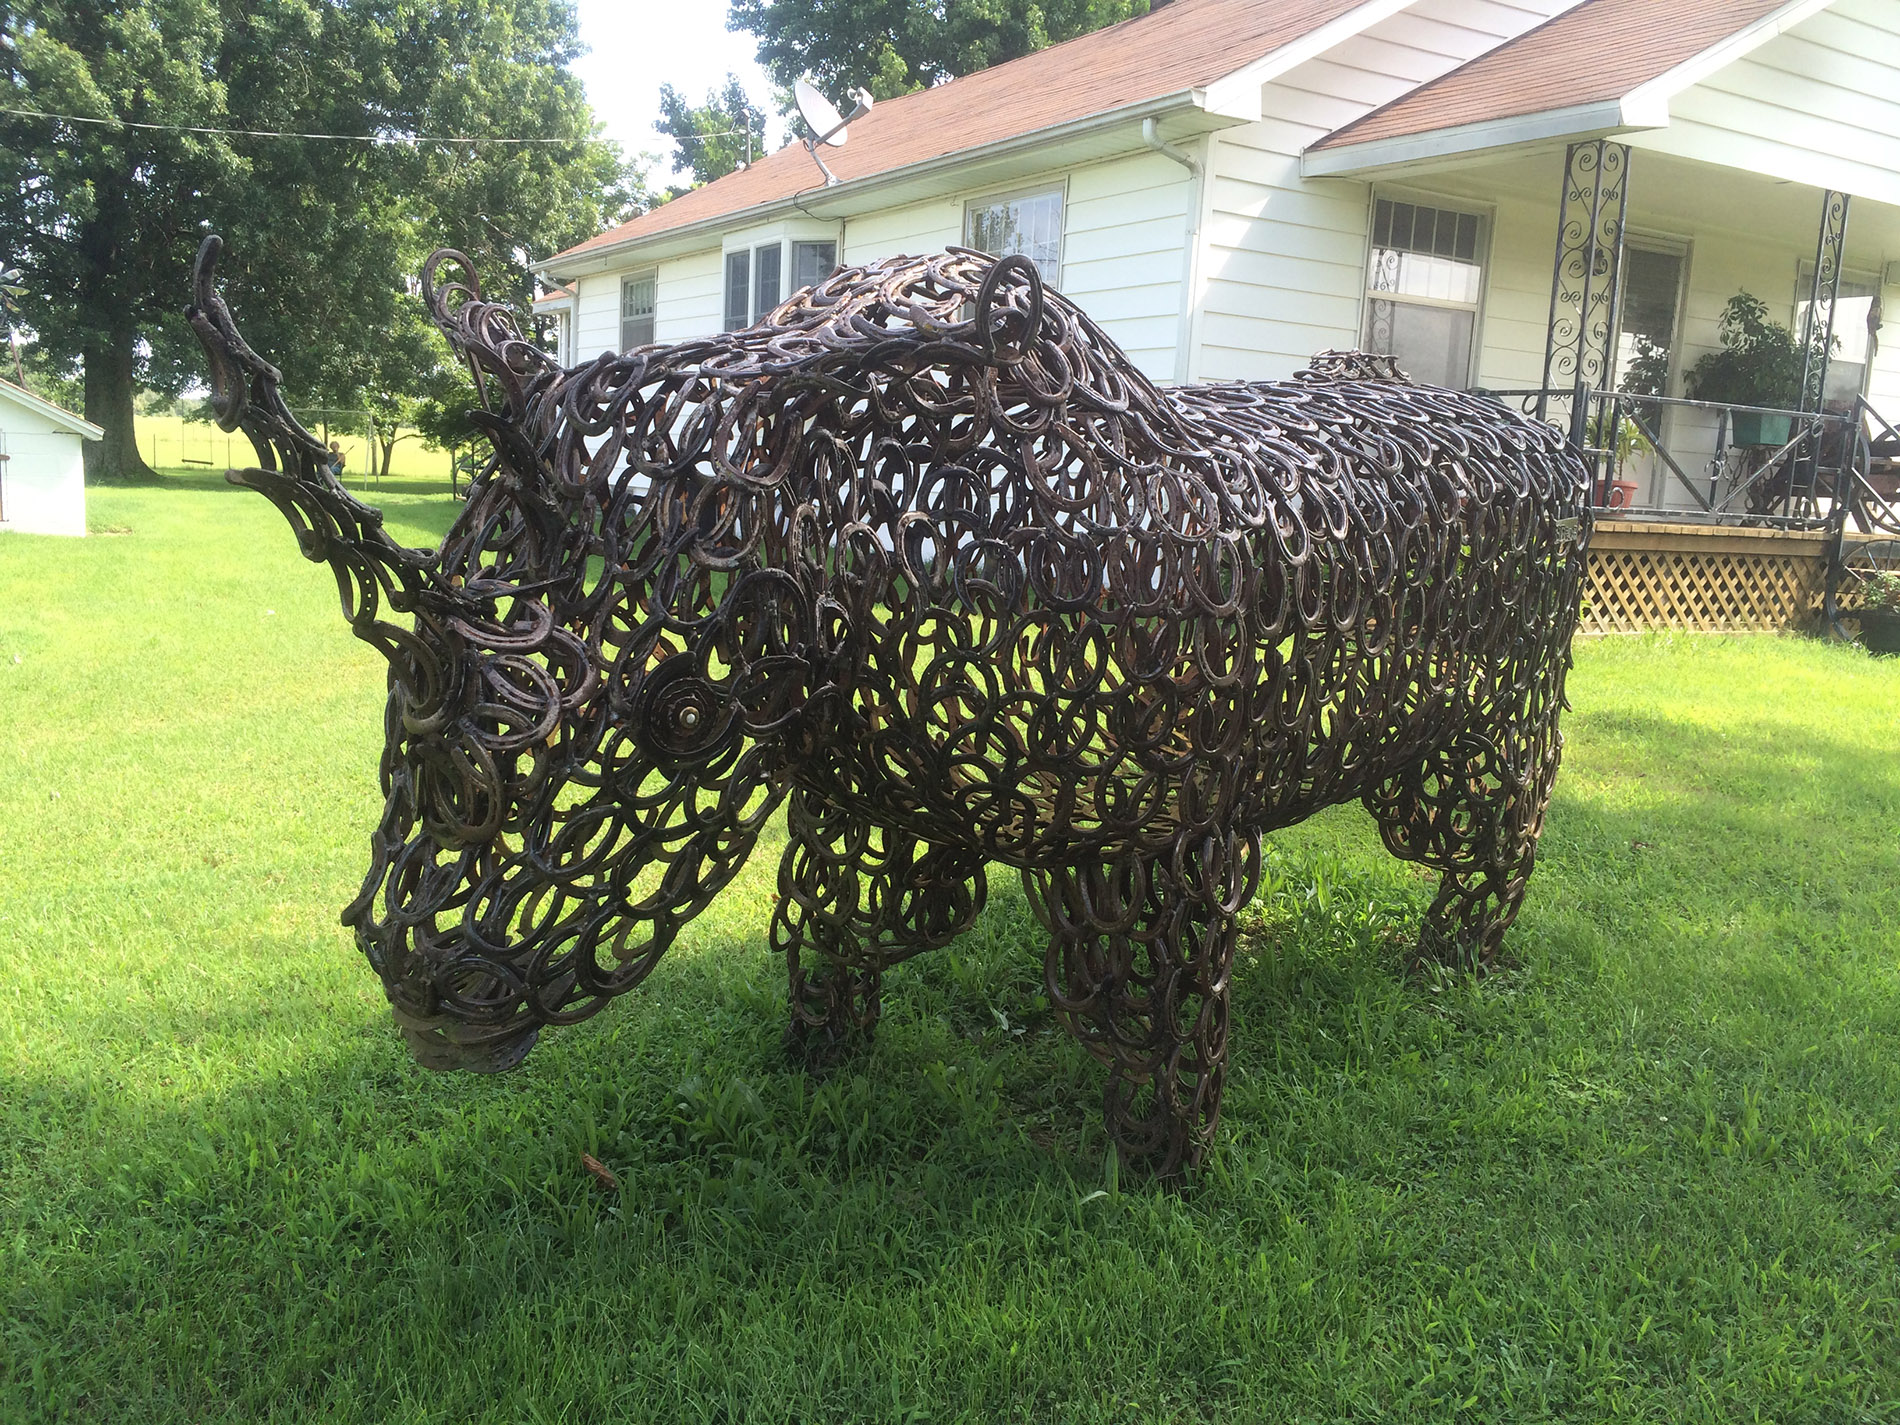 Bill Domby's Metalwork Menagerie